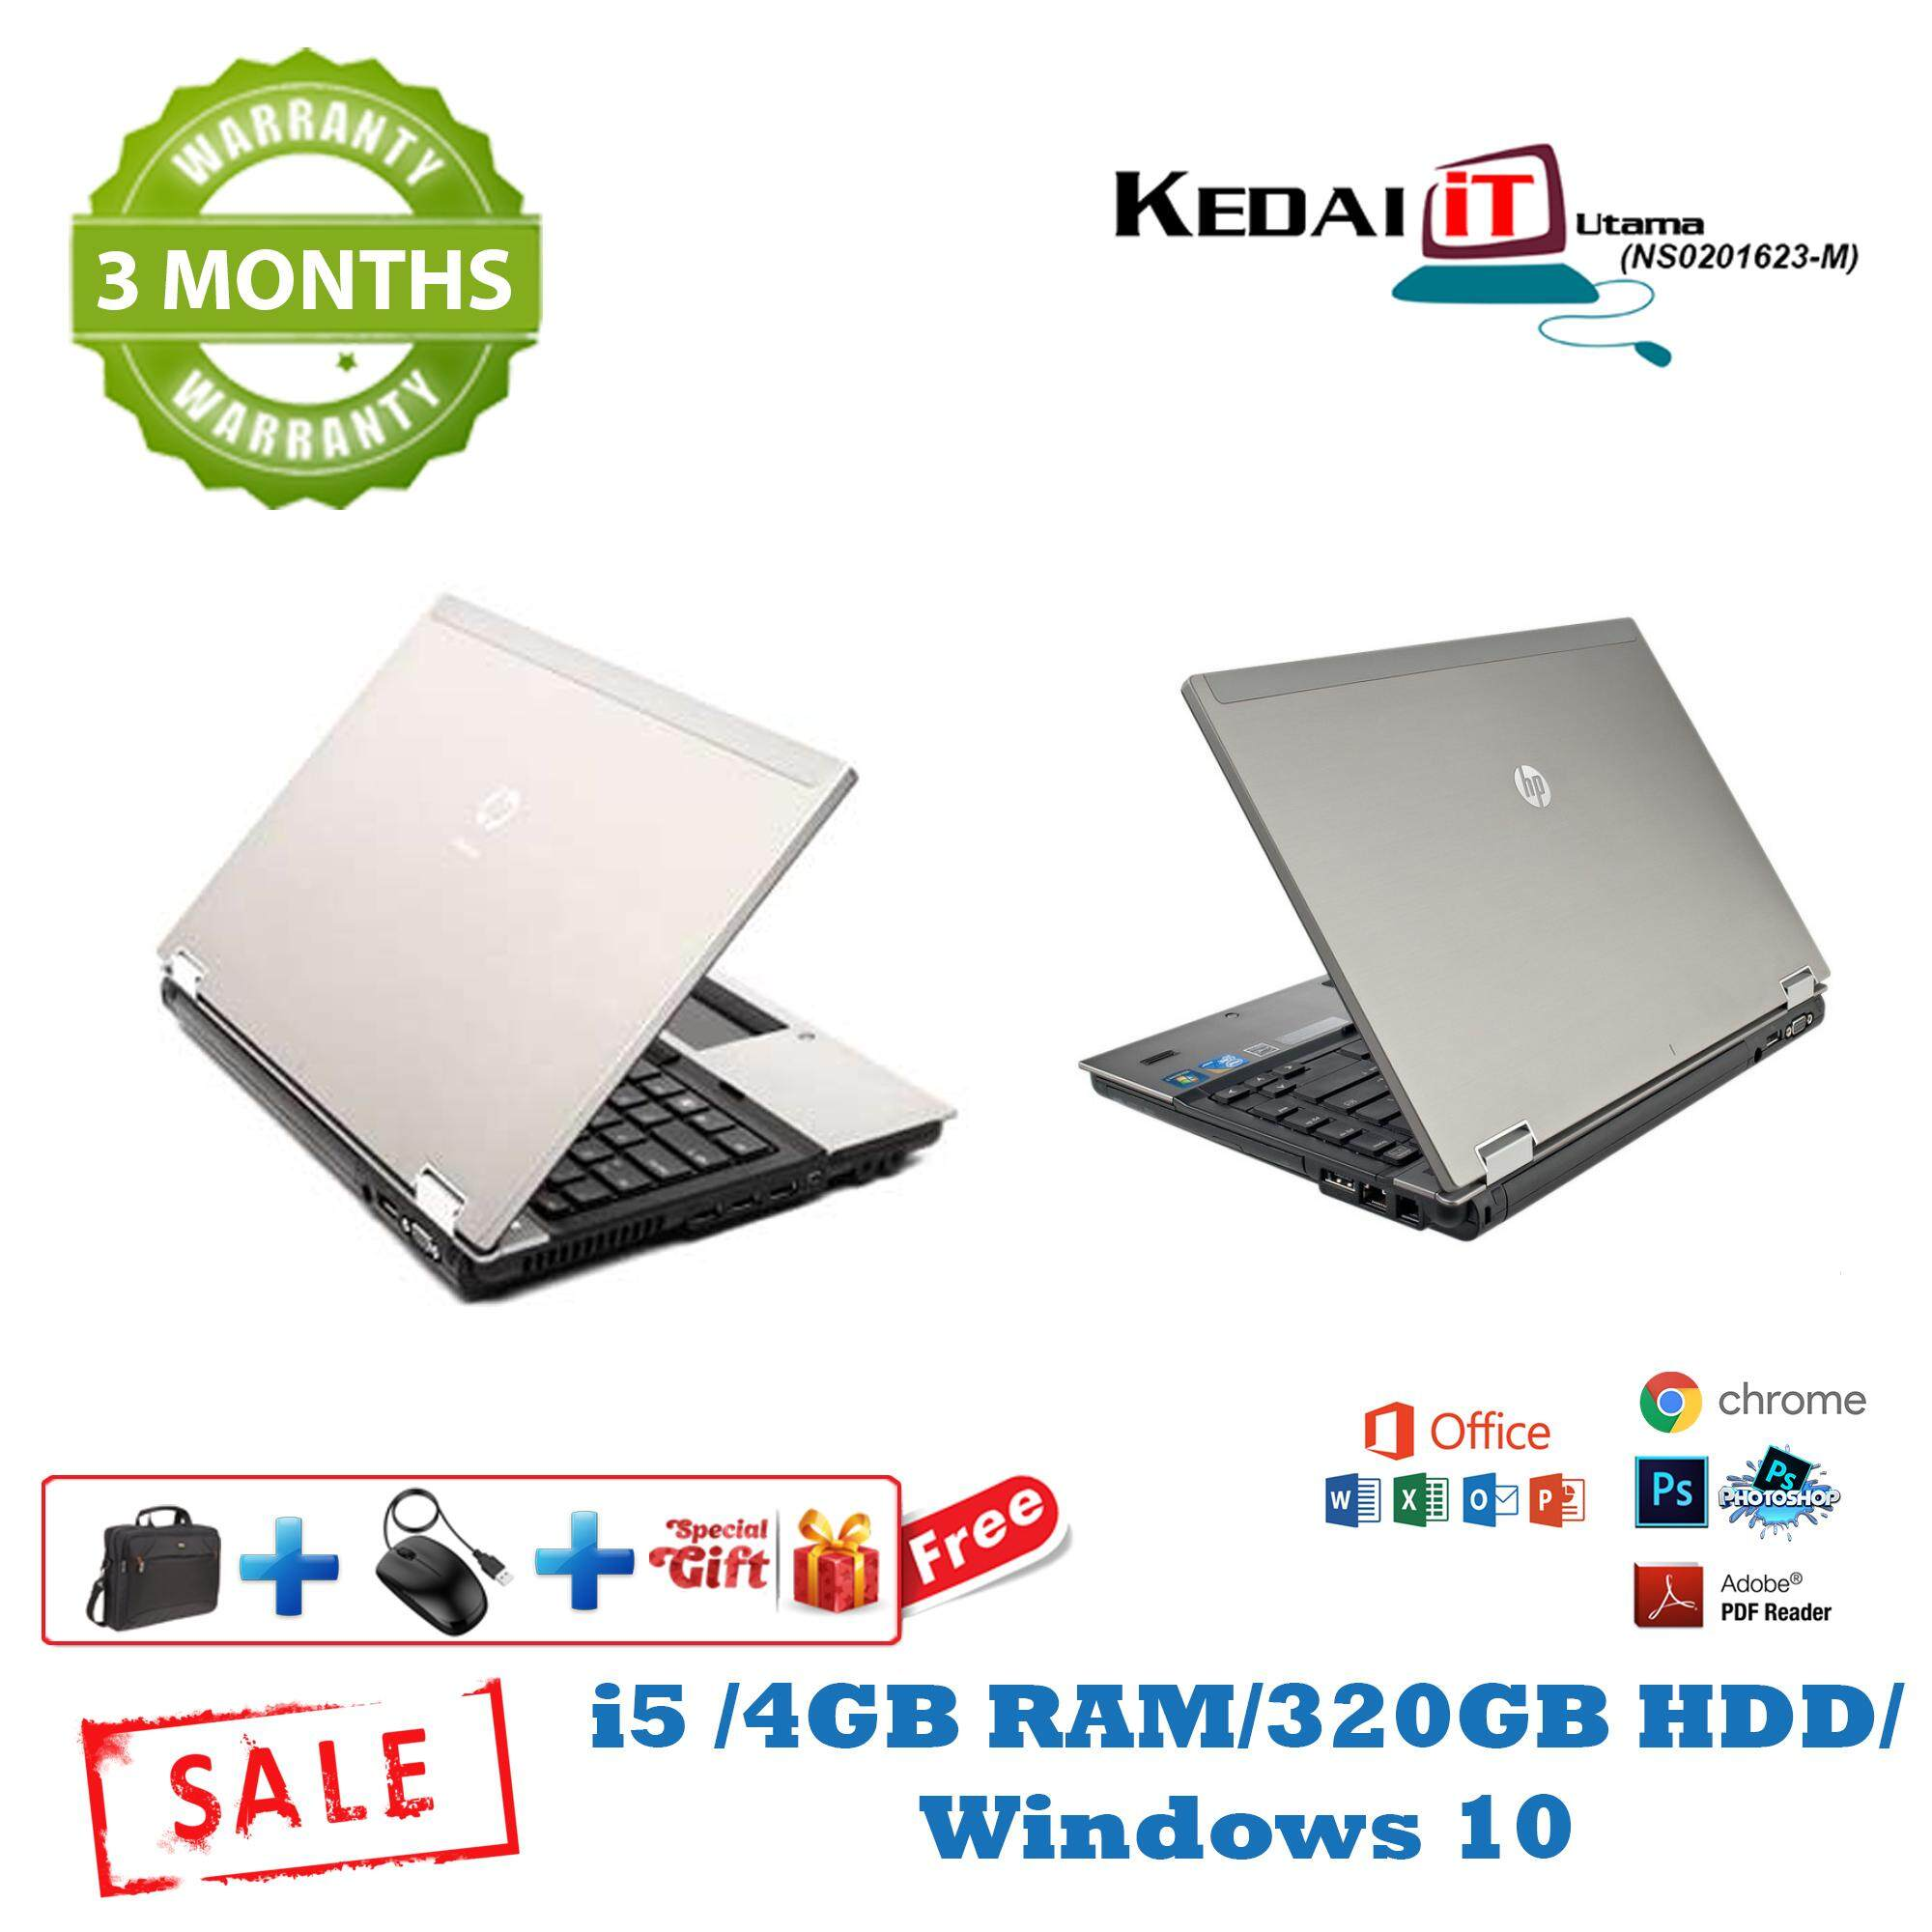 Hp 8440p i5 Laptop/ 4GB RAM/ 320GB HDD/ Windows 10/ Factory Refurbishes 3 Months Warranty Malaysia